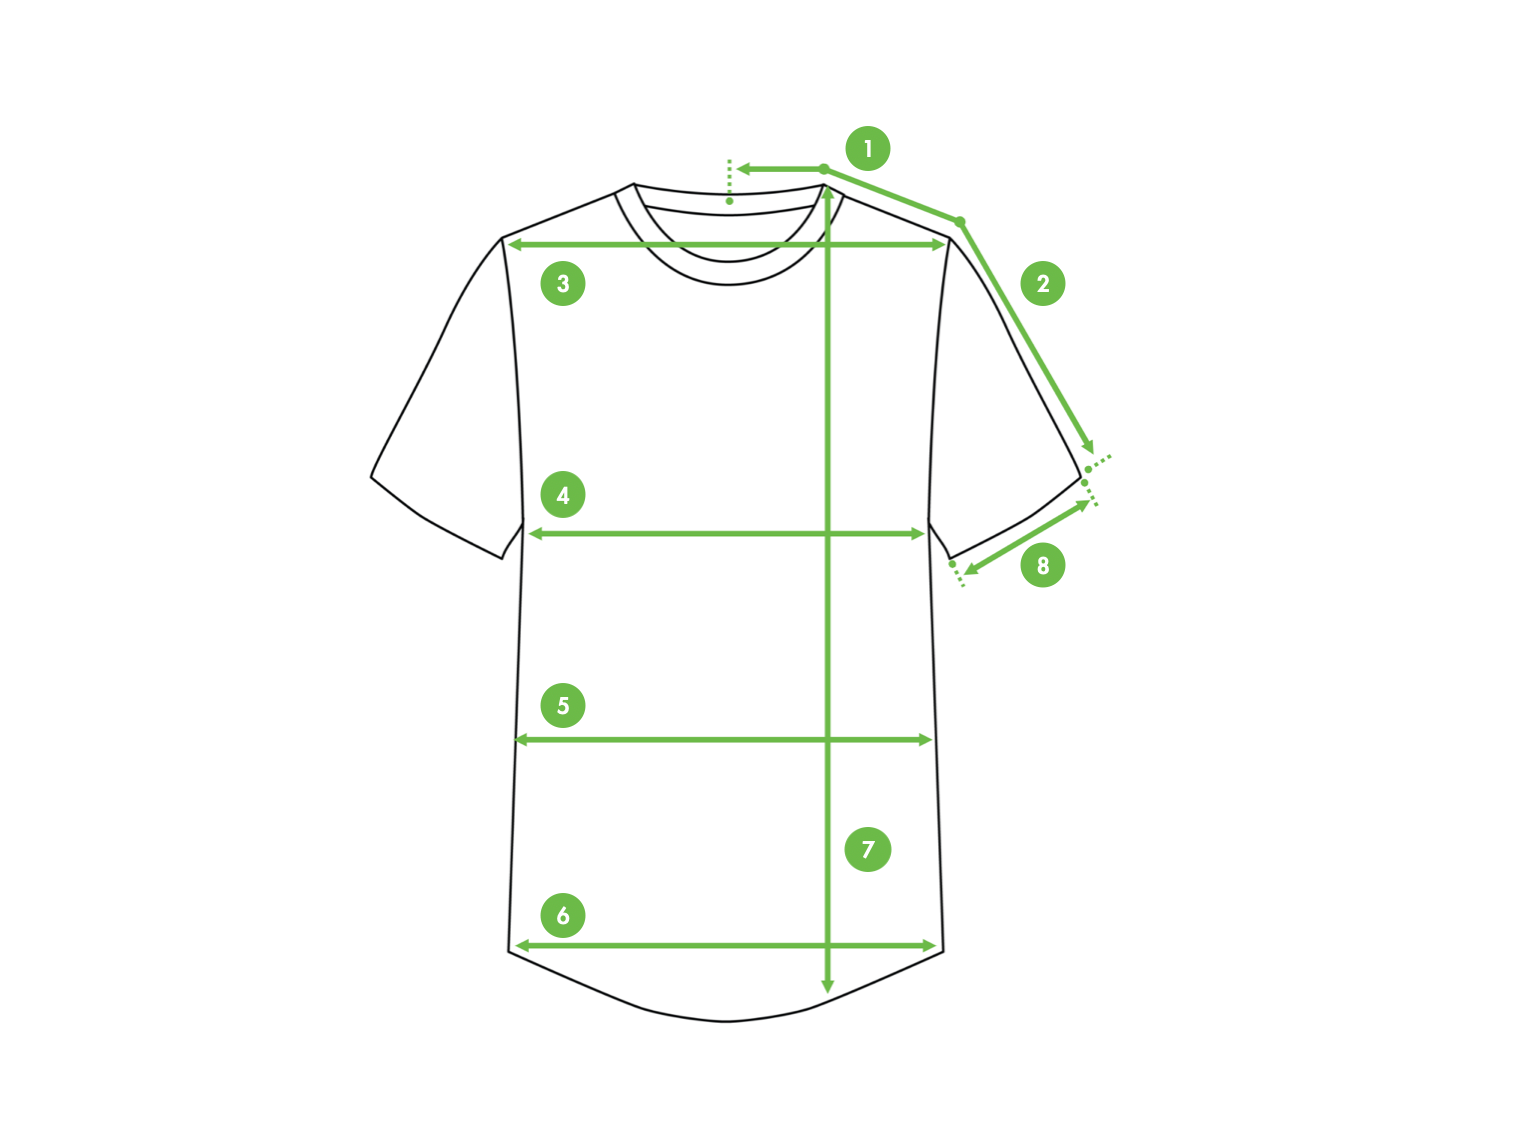 How to Measure a Tshirt ? Kiwi Sizing - Improve conversion and lower returns.